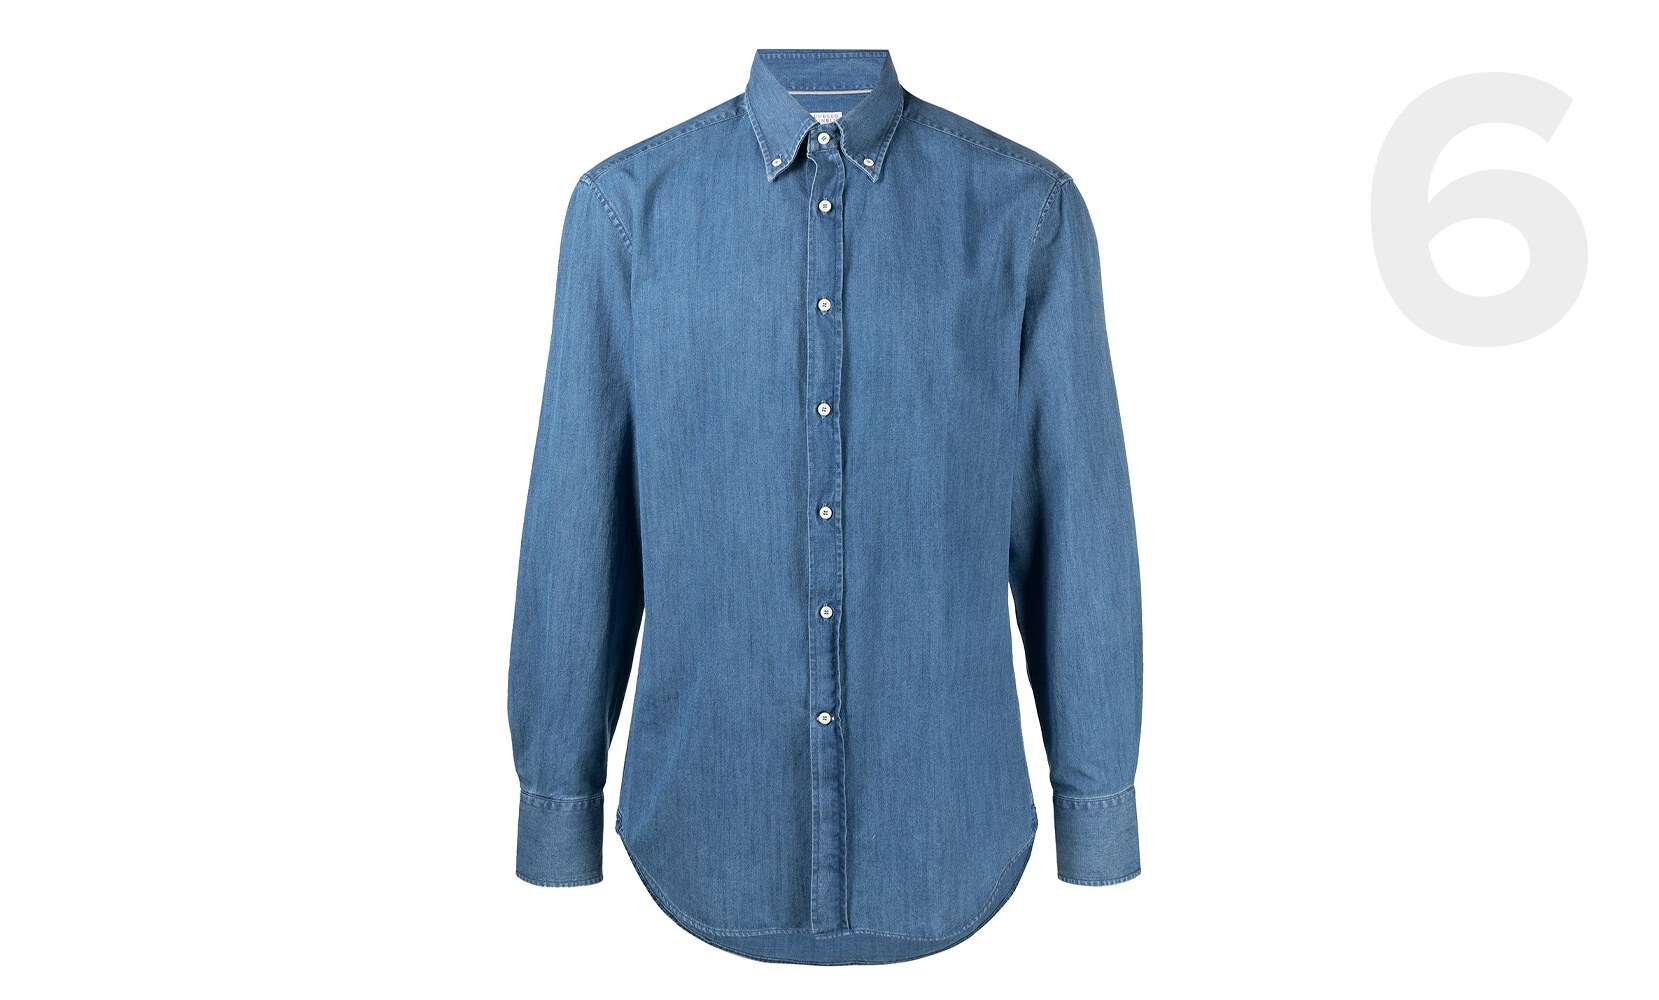 Brunello Cucinelli button-down denim shirt